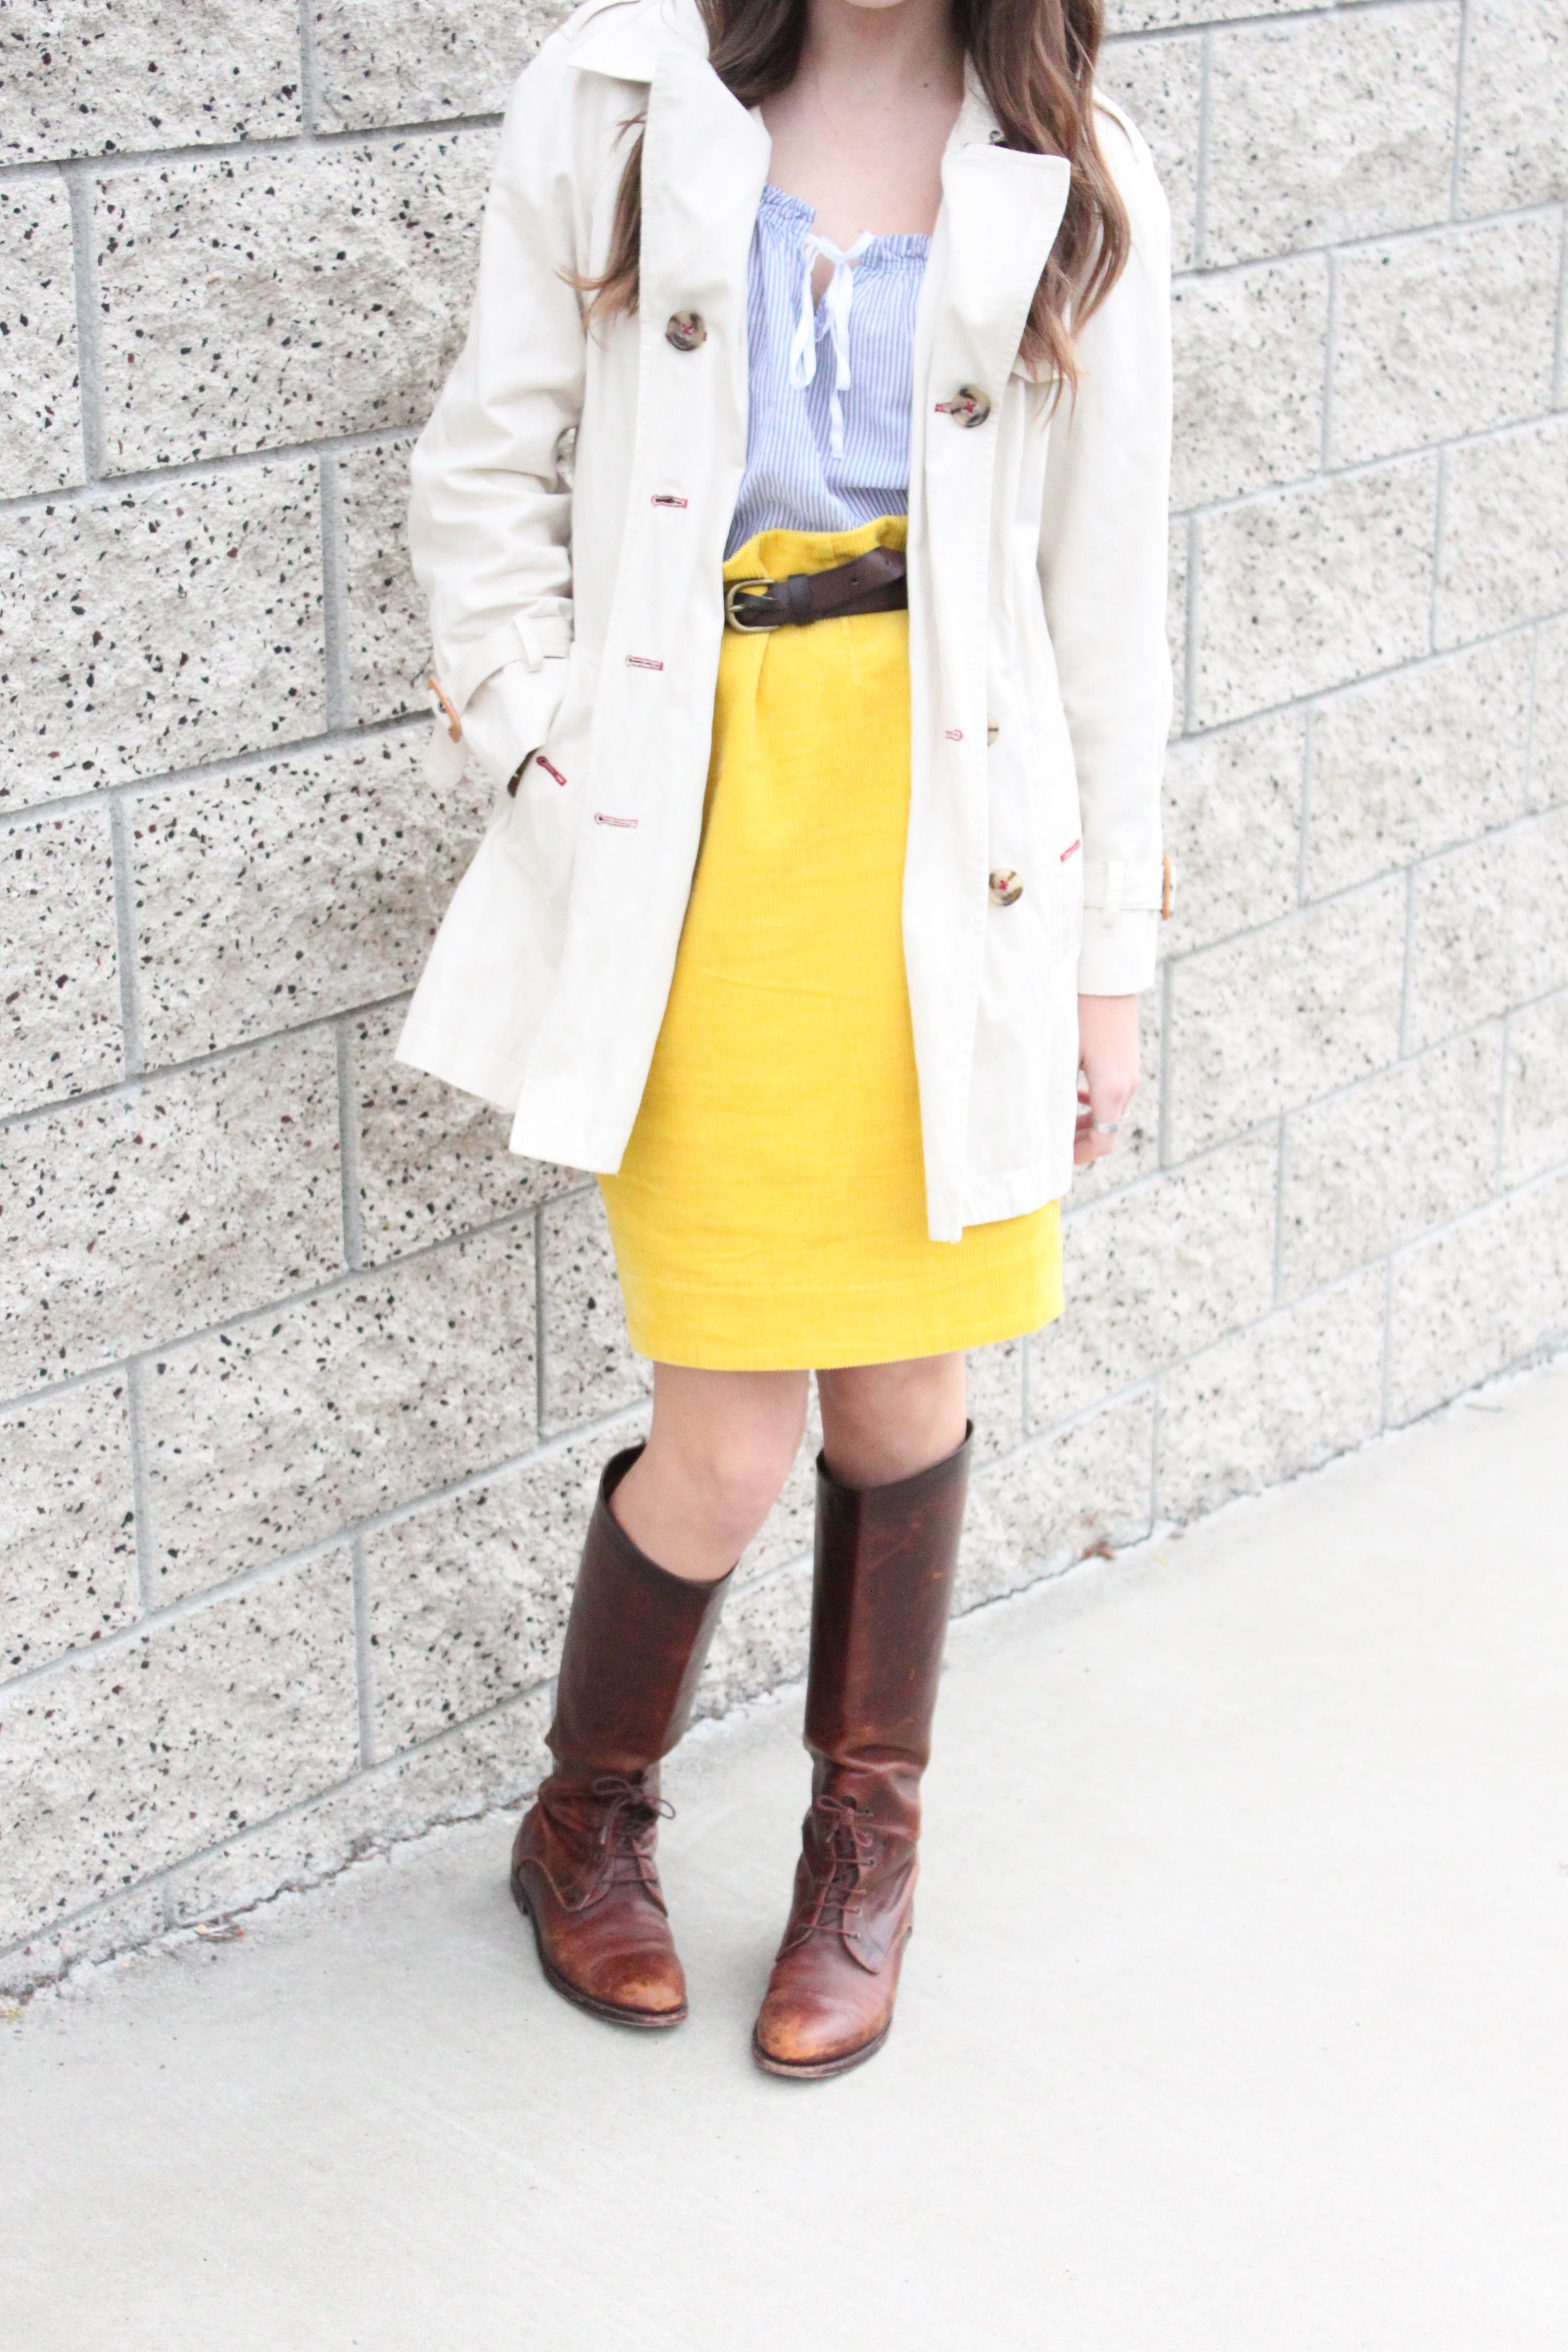 ♥ yellow skirt and blue striped shirt ♥